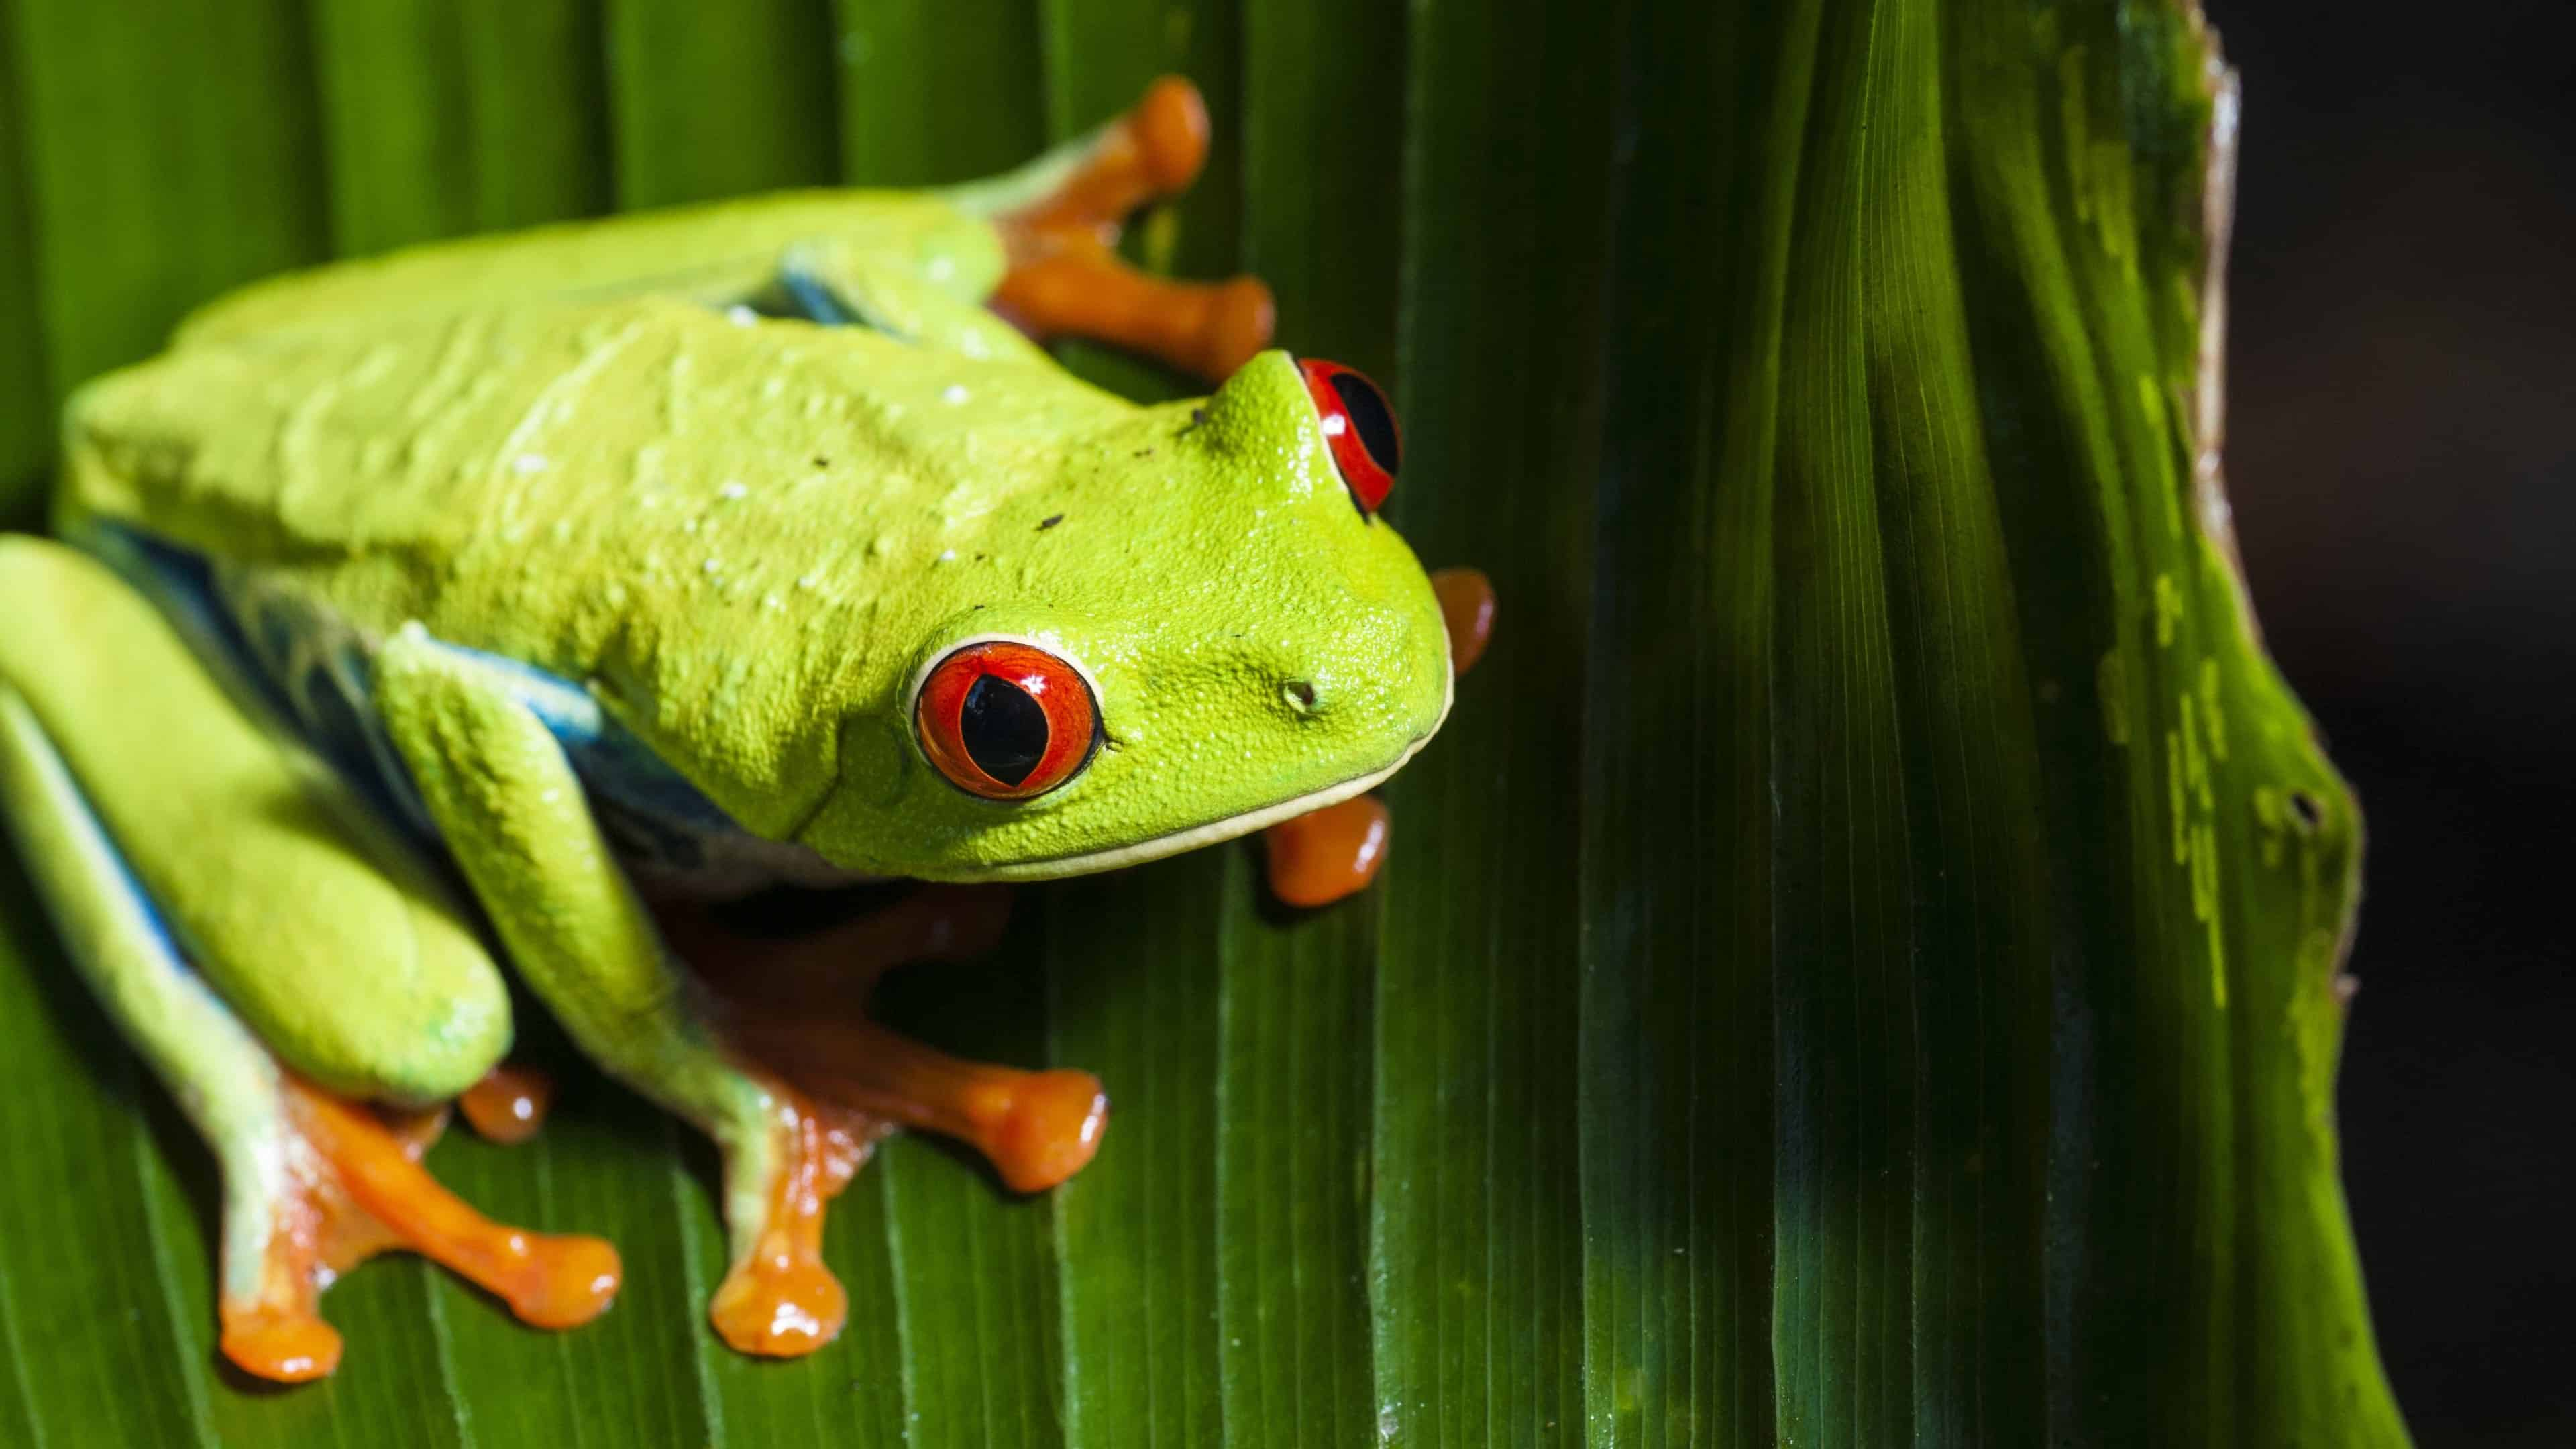 frog uhd 4k wallpaper